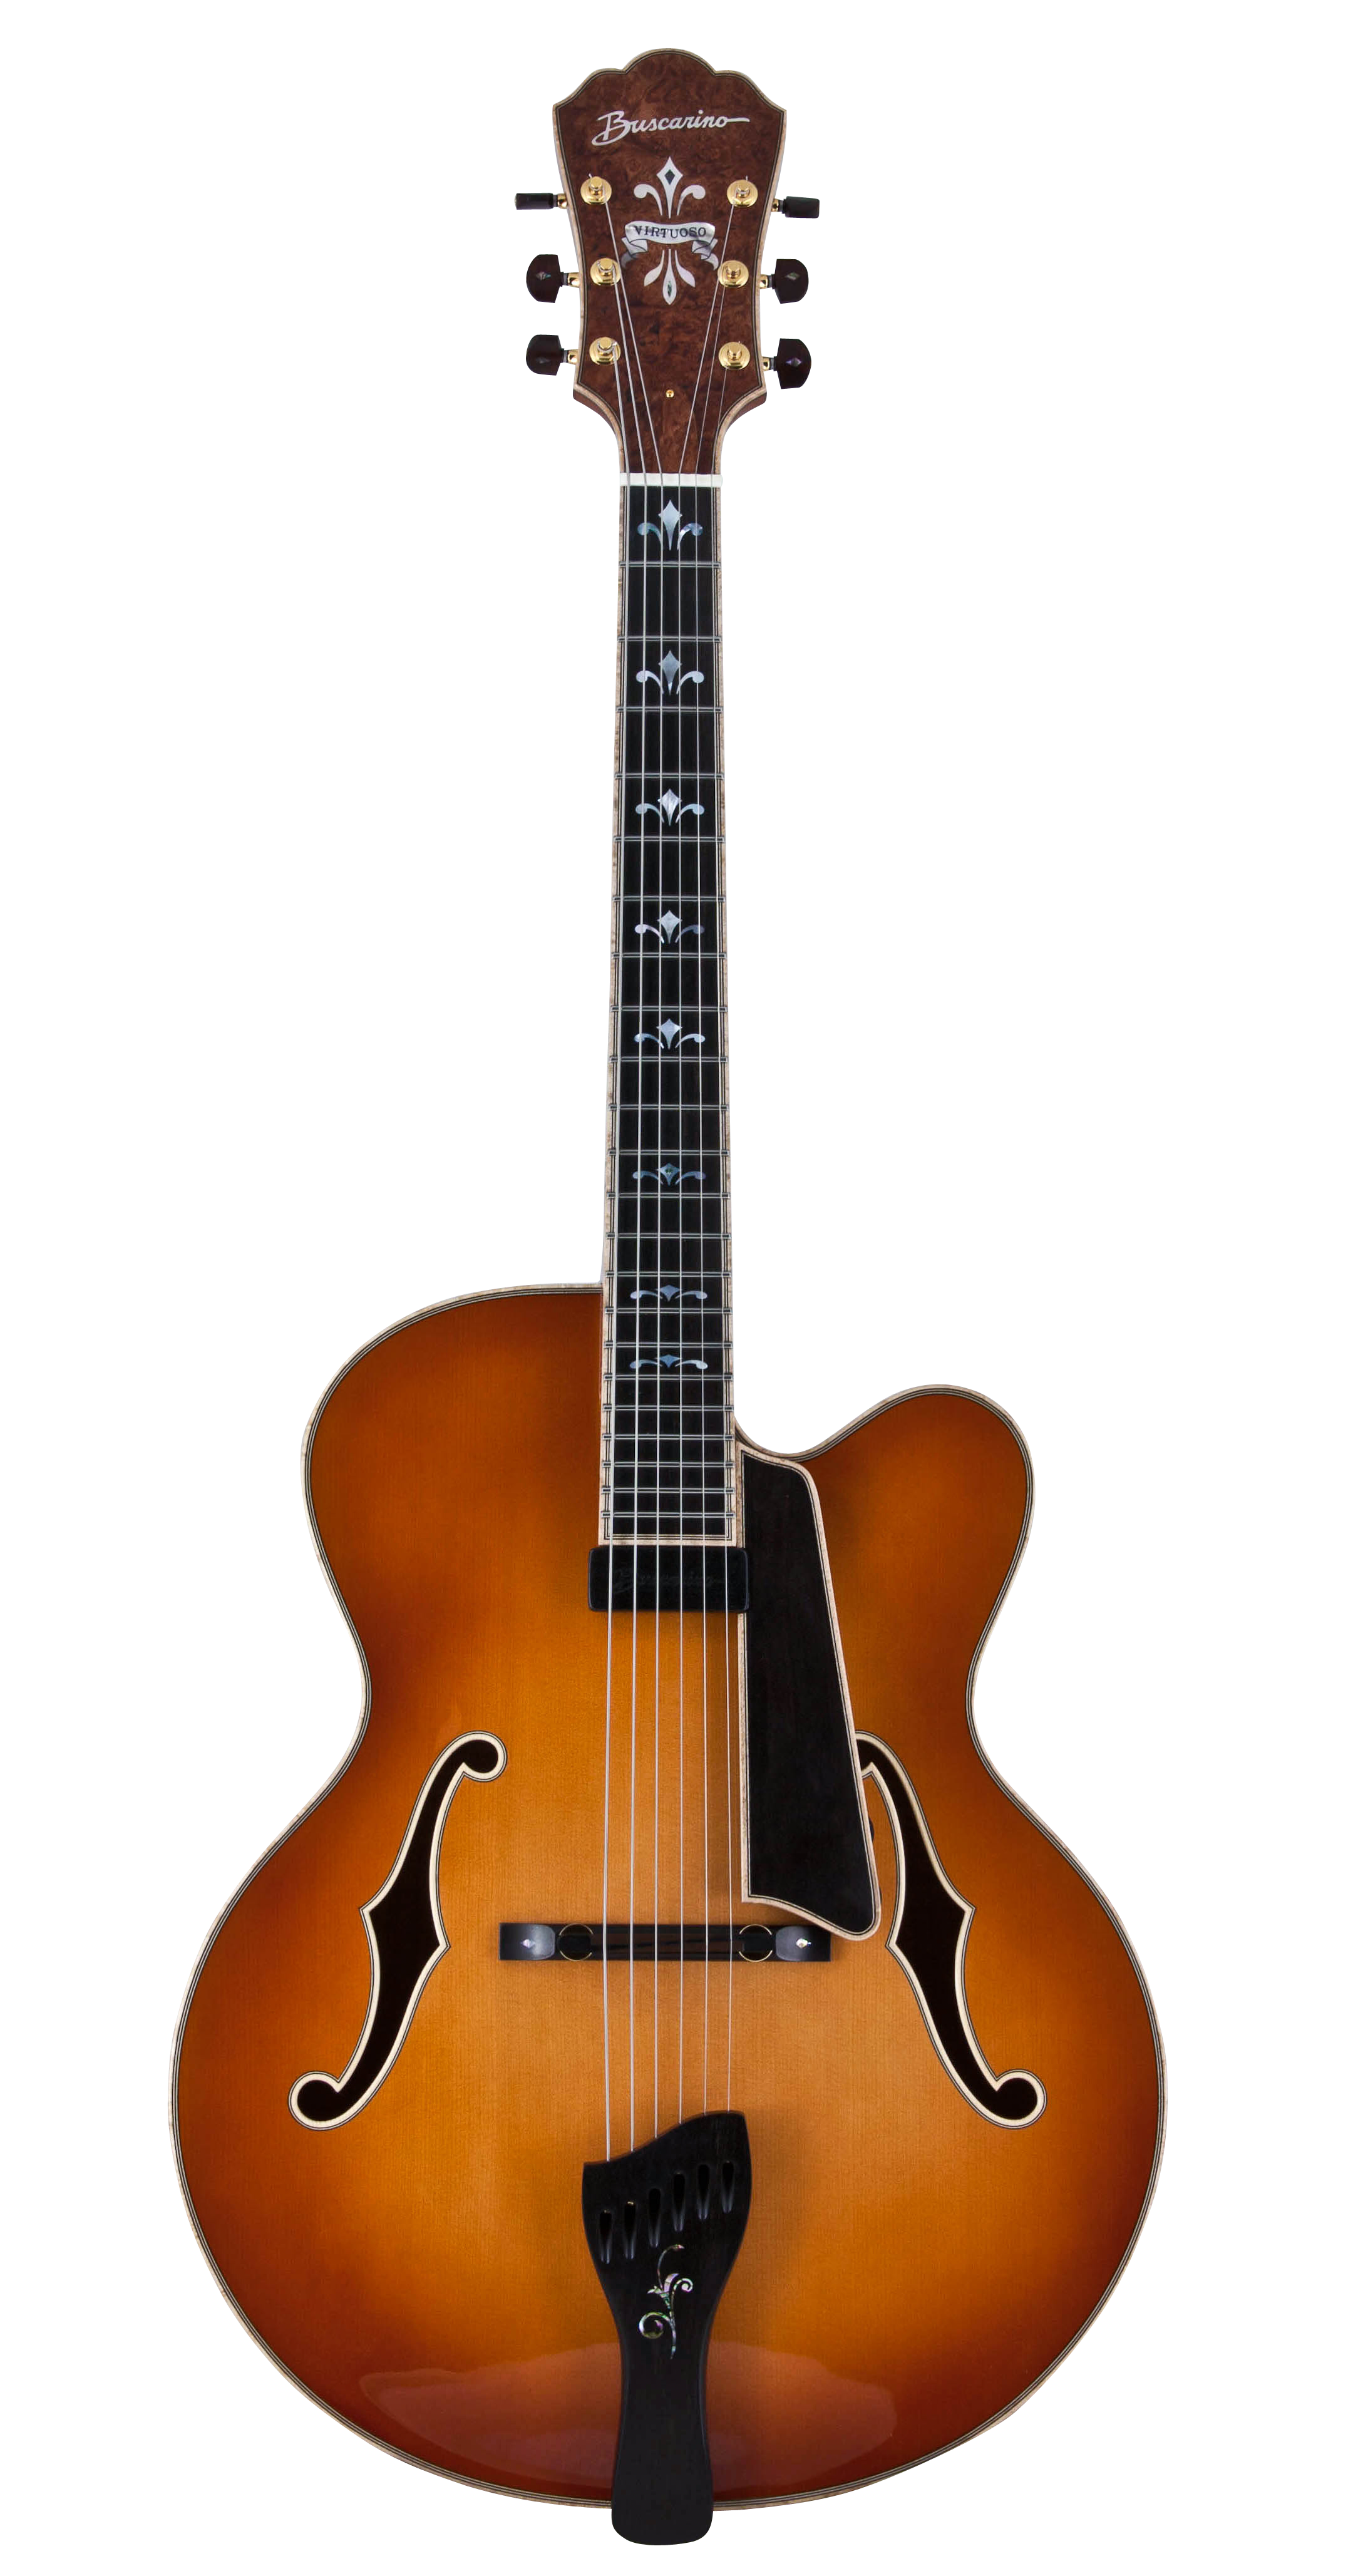 The Virtuoso Archtop